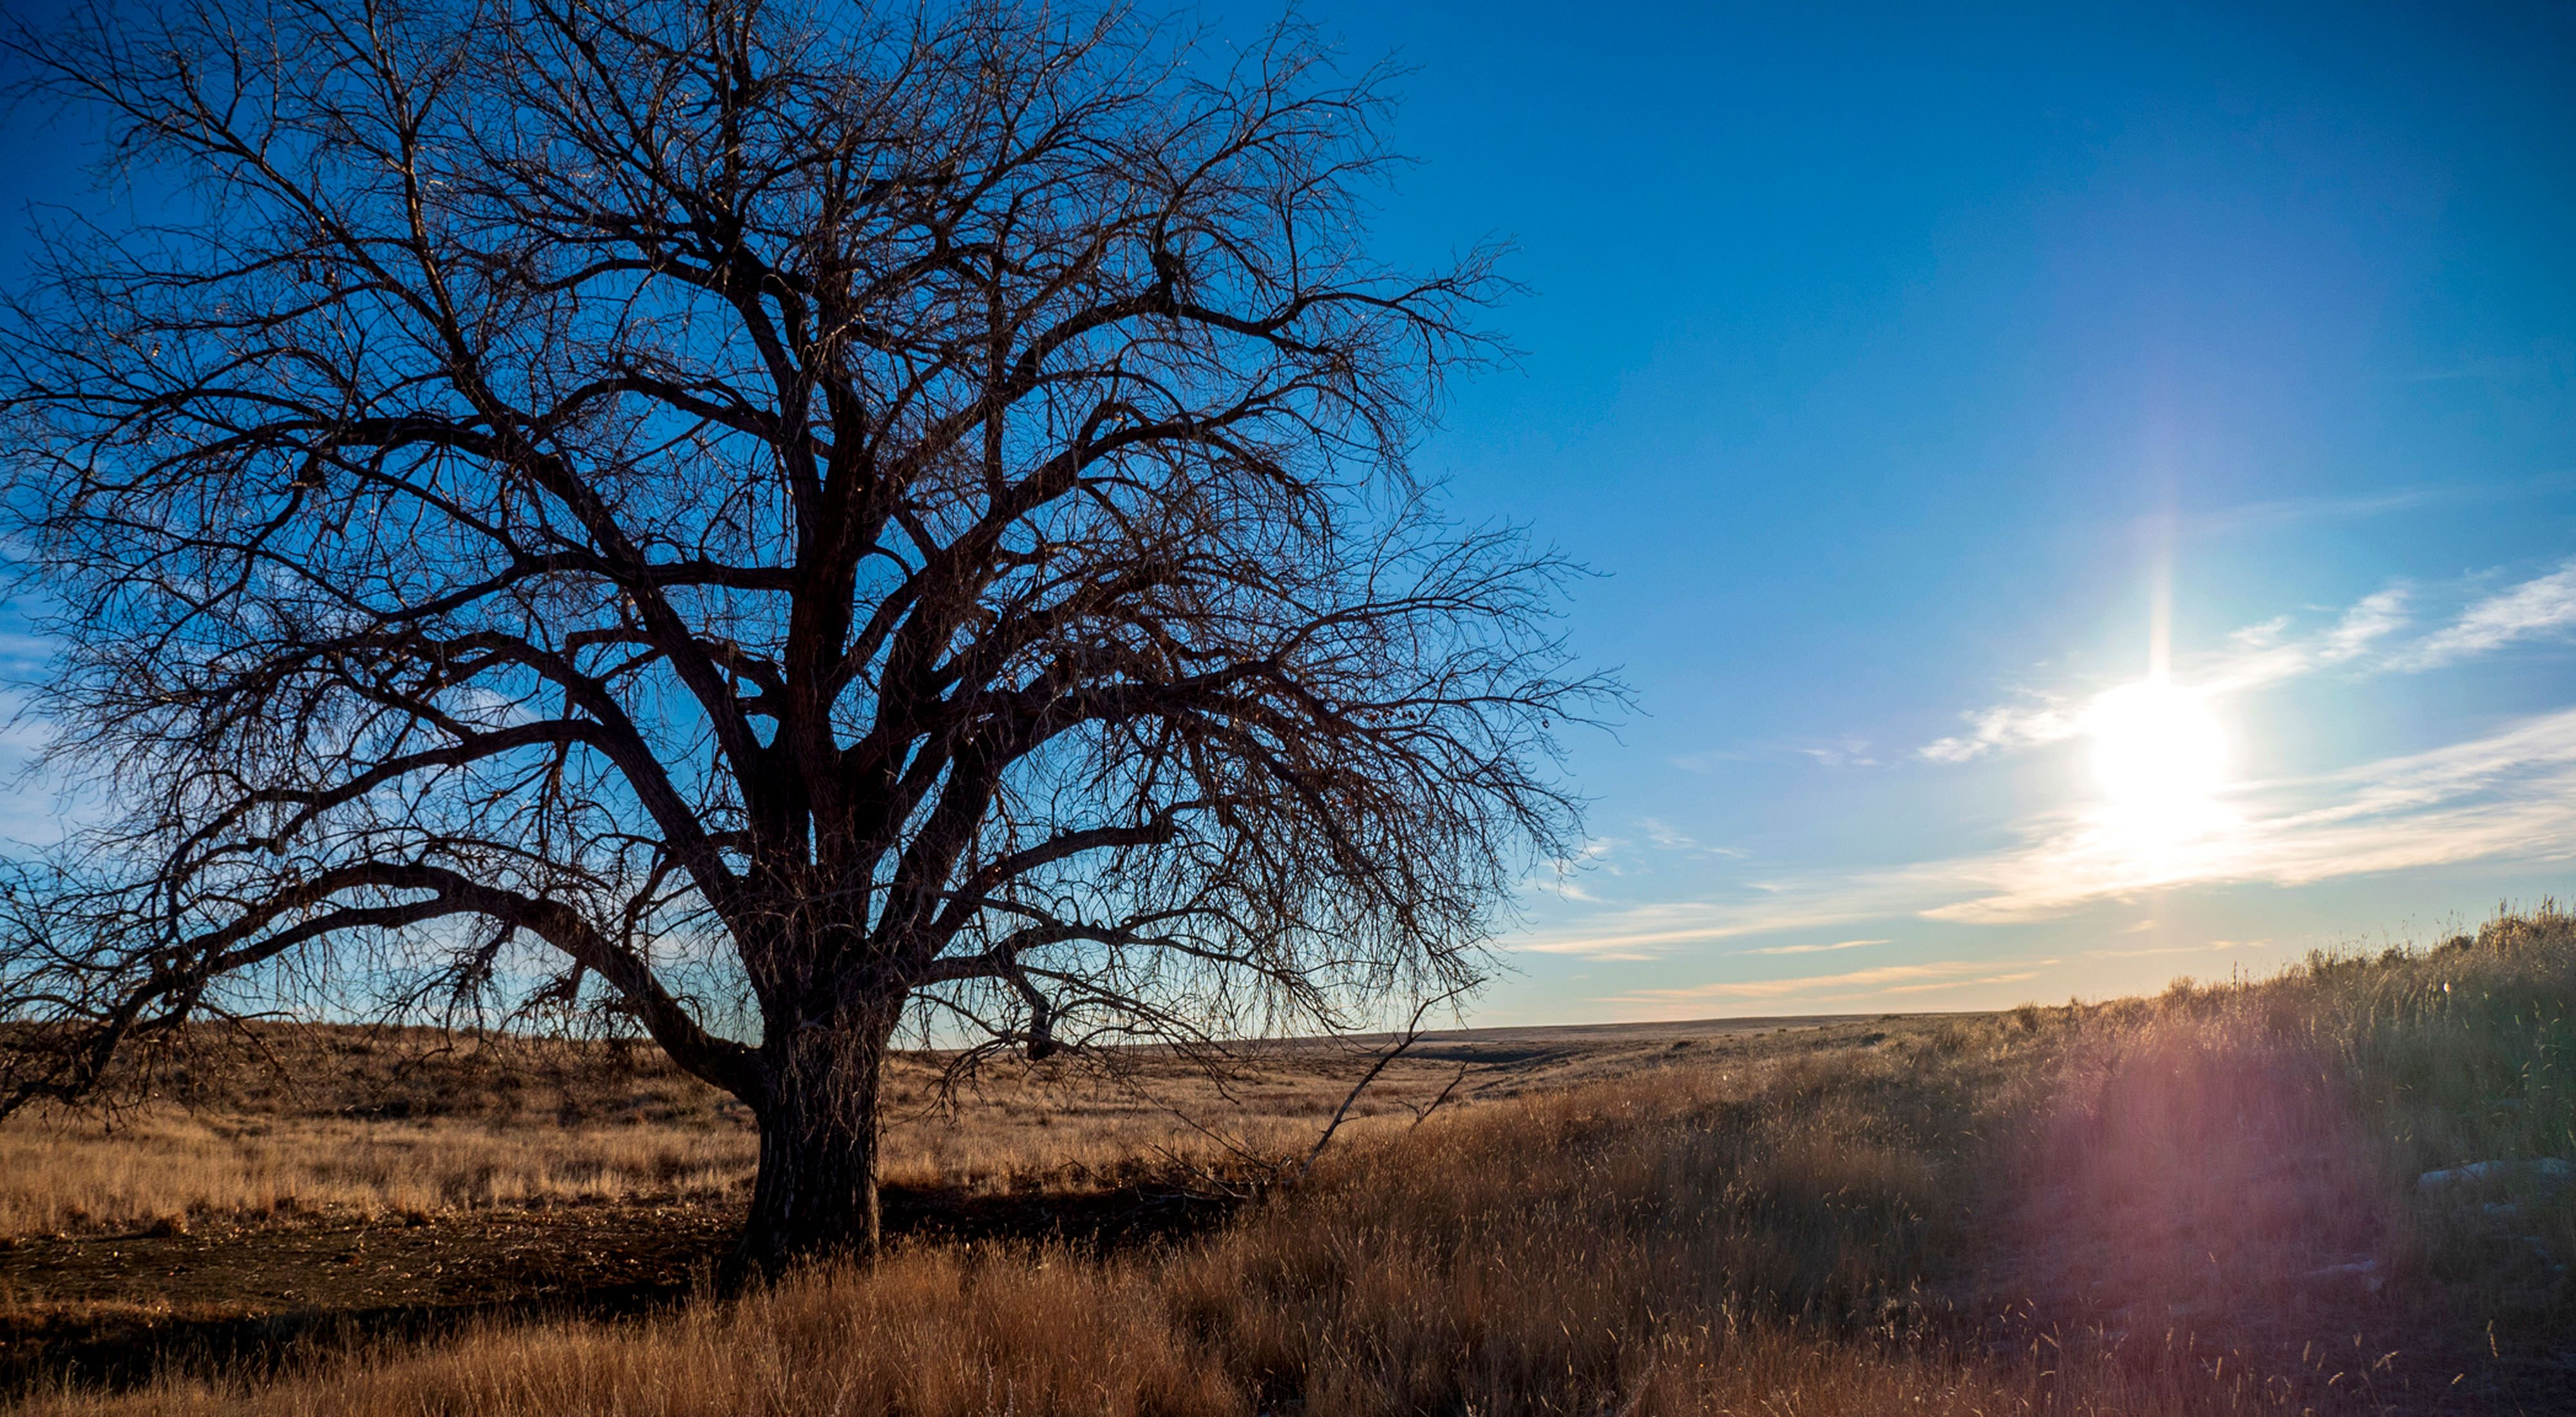 The sun rises over a prairie with a large tree in it.